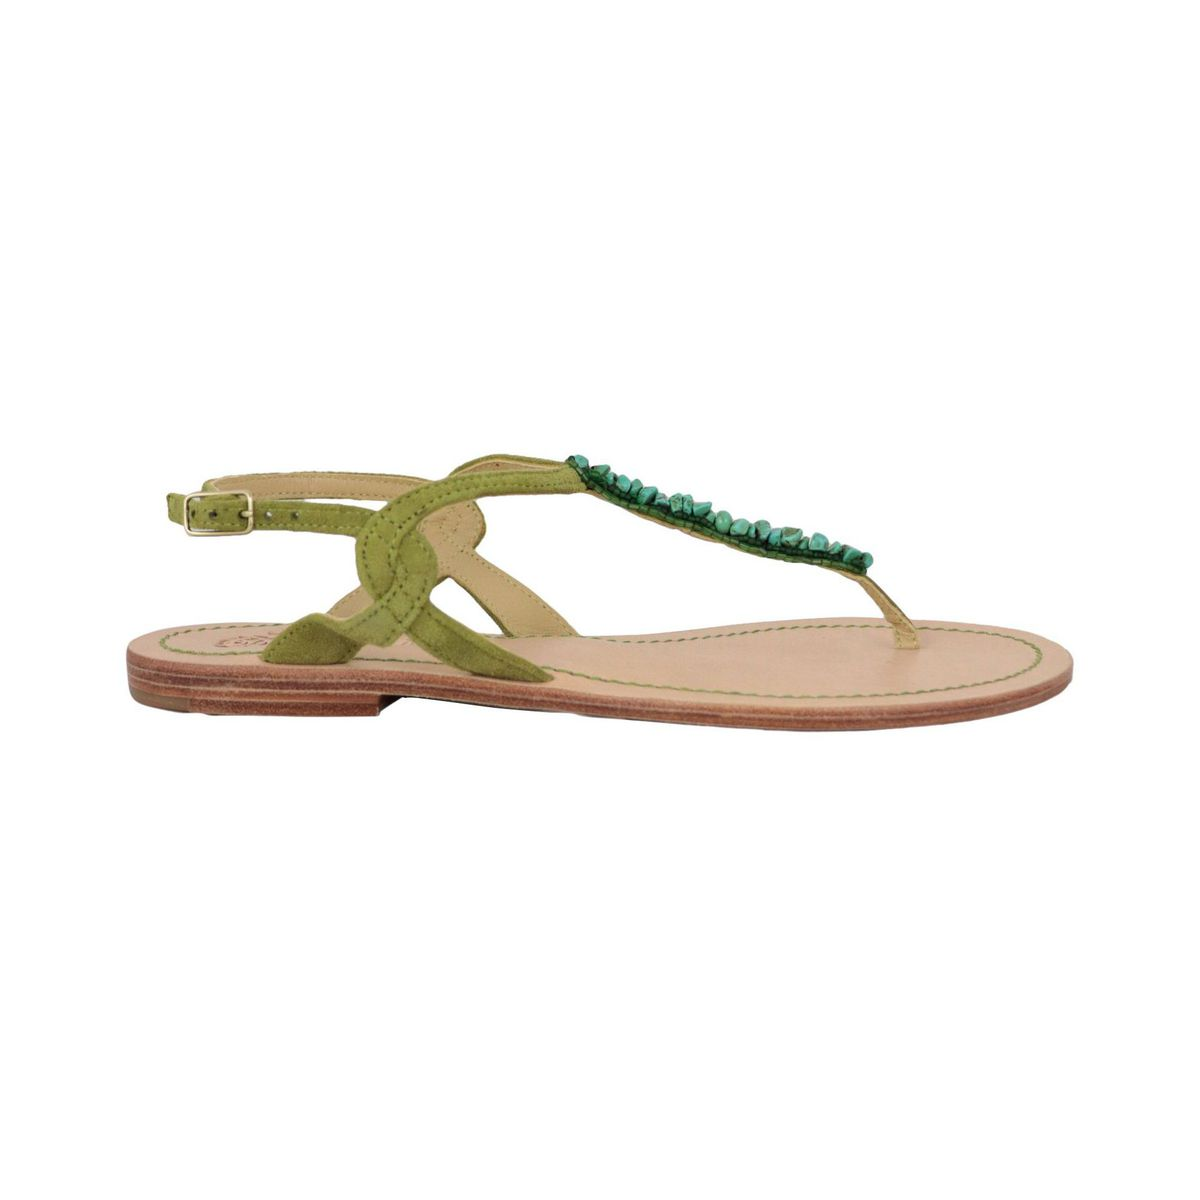 Capri Stones flip flops in leather with glass beads Olive Maliparmi